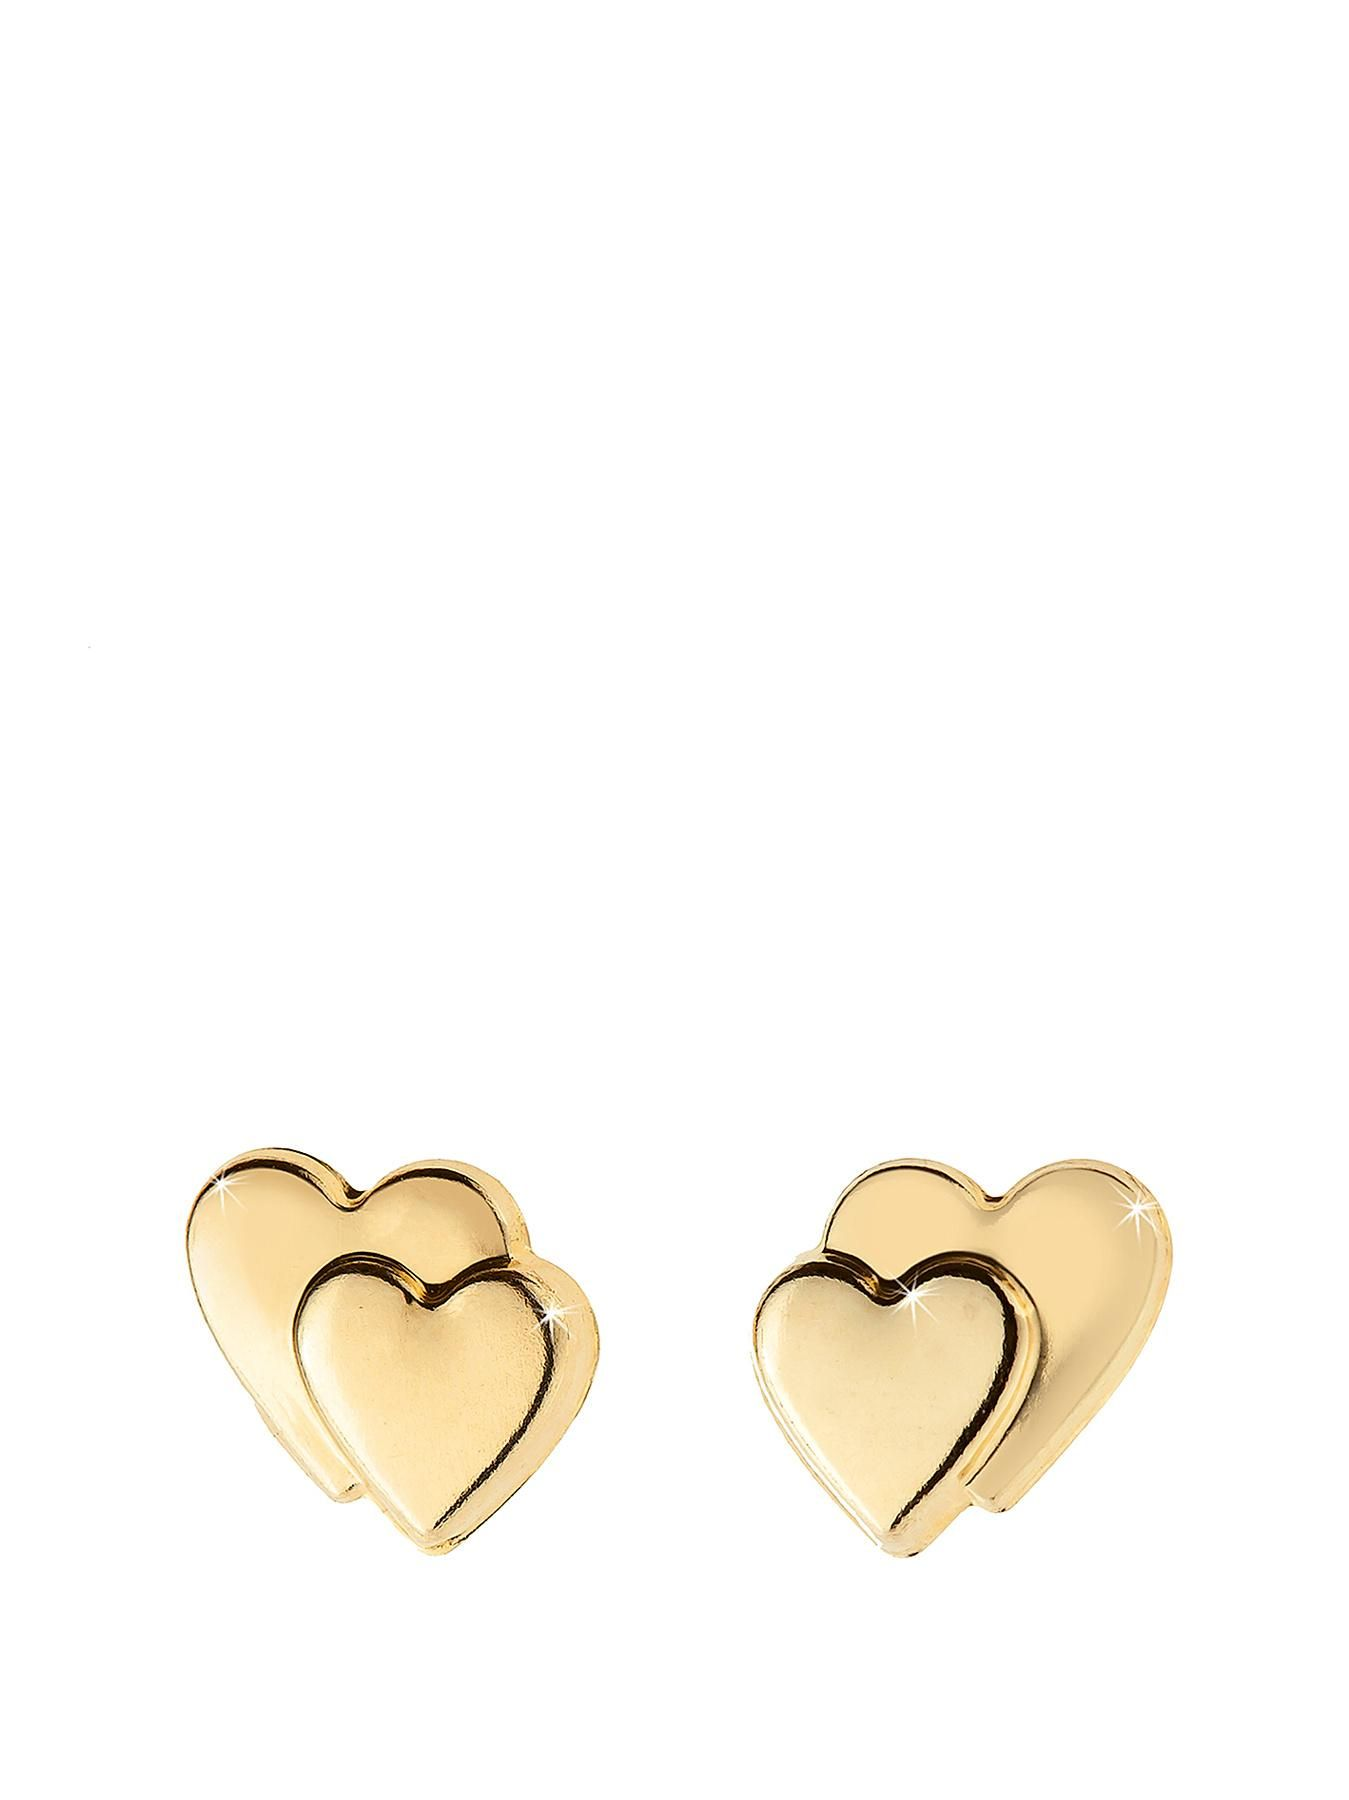 Beautiful Double Heart Studs Make A Pretty Addition To Any Jewellery Collection Lovingly Manufactured And Hand Finished In The Uk From 9ct Yellow Gold